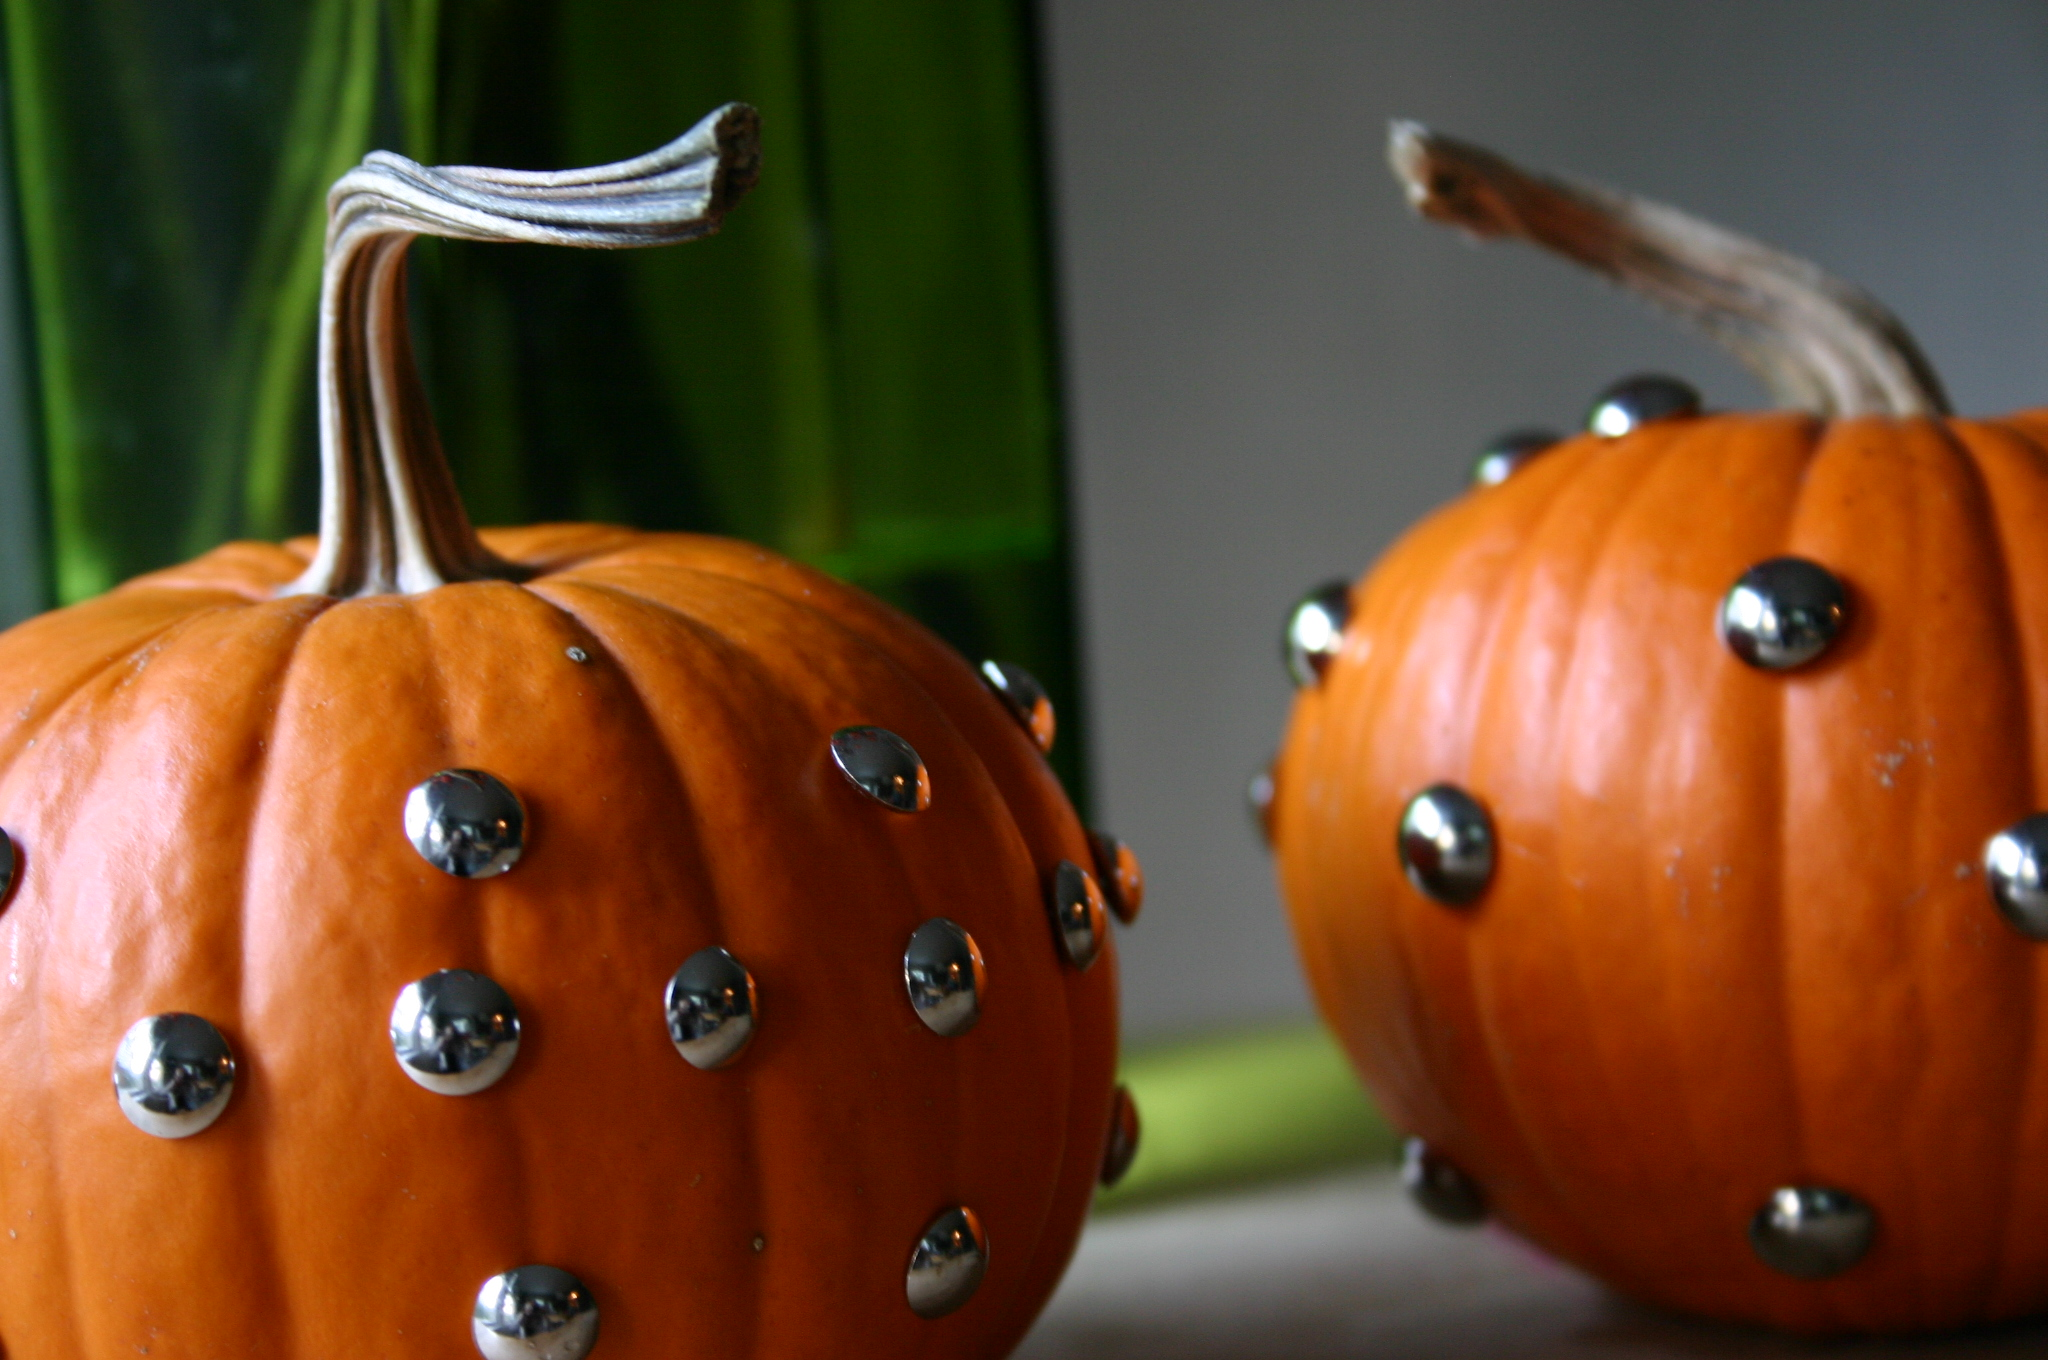 It doesn't get easier than this - just push the tacks into the pumpkin.